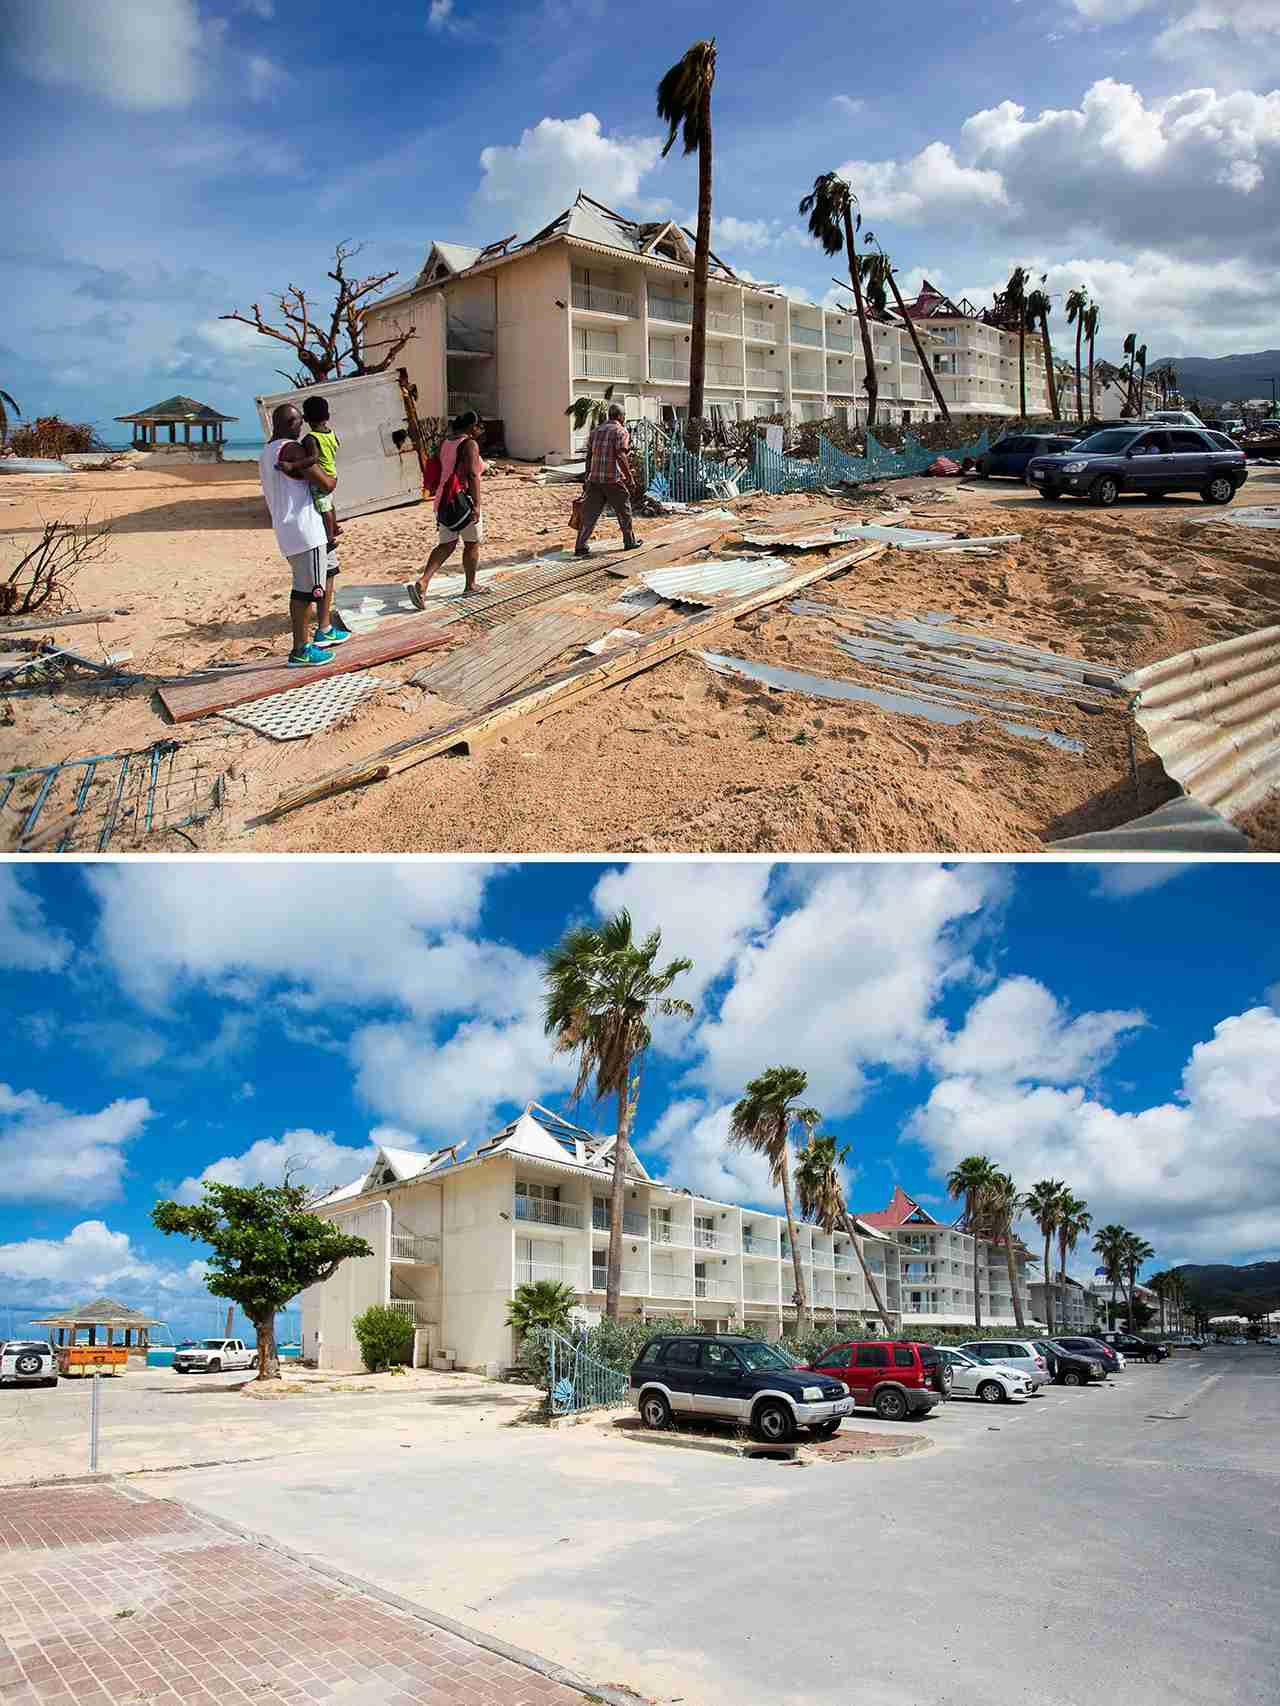 People walking past damaged on a sanded street in Marigot near the Bay of Nettle on the French Caribbean island of Saint-Martin on September 7, 2017, after the passage of Hurricane Irma, and (down) the parking cleared of debris next to building still damaged on February 28, 2018. (LIONEL CHAMOISEAU/AFP/Getty Images)